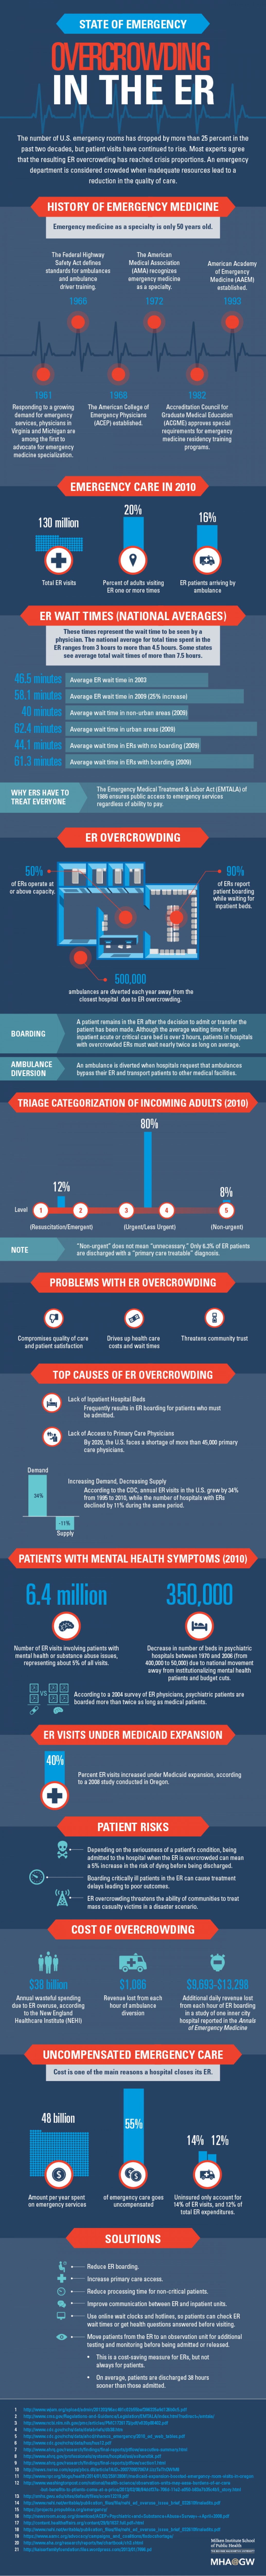 State of Emergency: Overcrowding in the ER Infographic